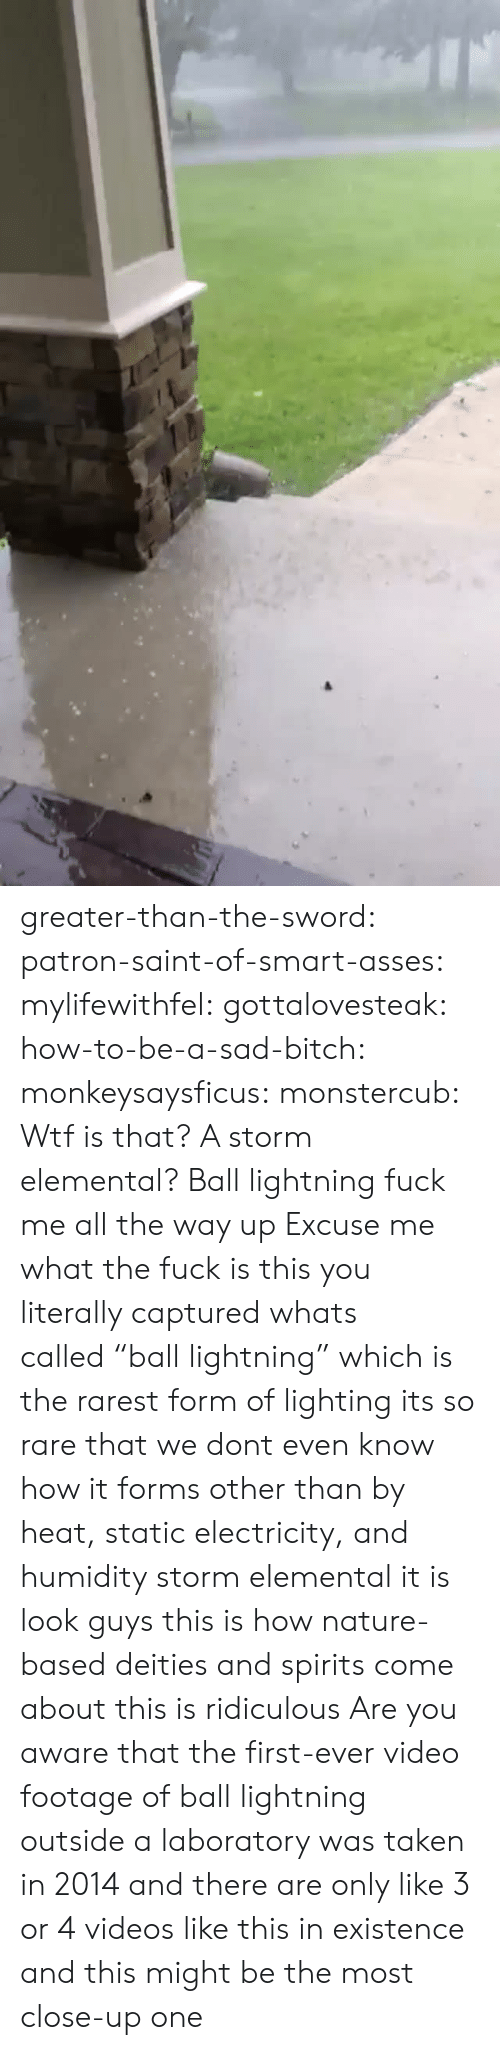 "Bitch, Taken, and Tumblr: greater-than-the-sword:  patron-saint-of-smart-asses:  mylifewithfel:  gottalovesteak:  how-to-be-a-sad-bitch:  monkeysaysficus:   monstercub: Wtf is that? A storm elemental?  Ball lightning fuck me all the way up   Excuse me what the fuck is this  you literally captured whats called ""ball lightning"" which is the rarest form of lighting its so rare that we dont even know how it forms other than by heat, static electricity, and humidity  storm elemental it is  look guys this is how nature-based deities and spirits come about this is ridiculous  Are you aware that the first-ever video footage of ball lightning outside a laboratory was taken in 2014 and there are only like 3 or 4 videos like this in existence and this might be the most close-up one"